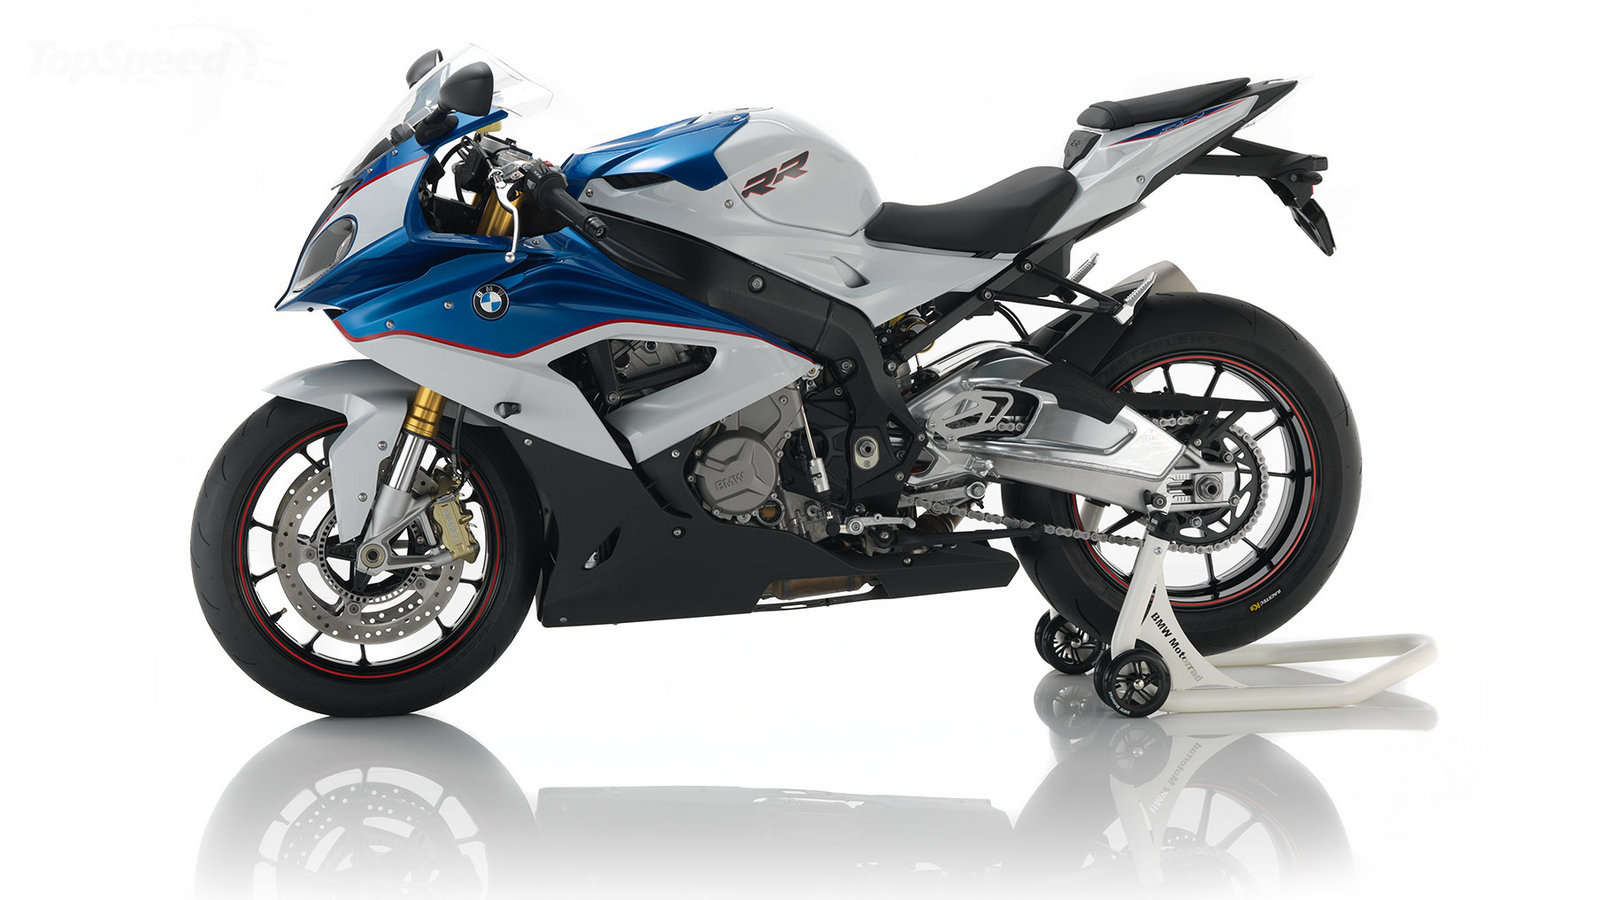 2015 2017 bmw s 1000 rr picture 678719 motorcycle review top speed. Black Bedroom Furniture Sets. Home Design Ideas